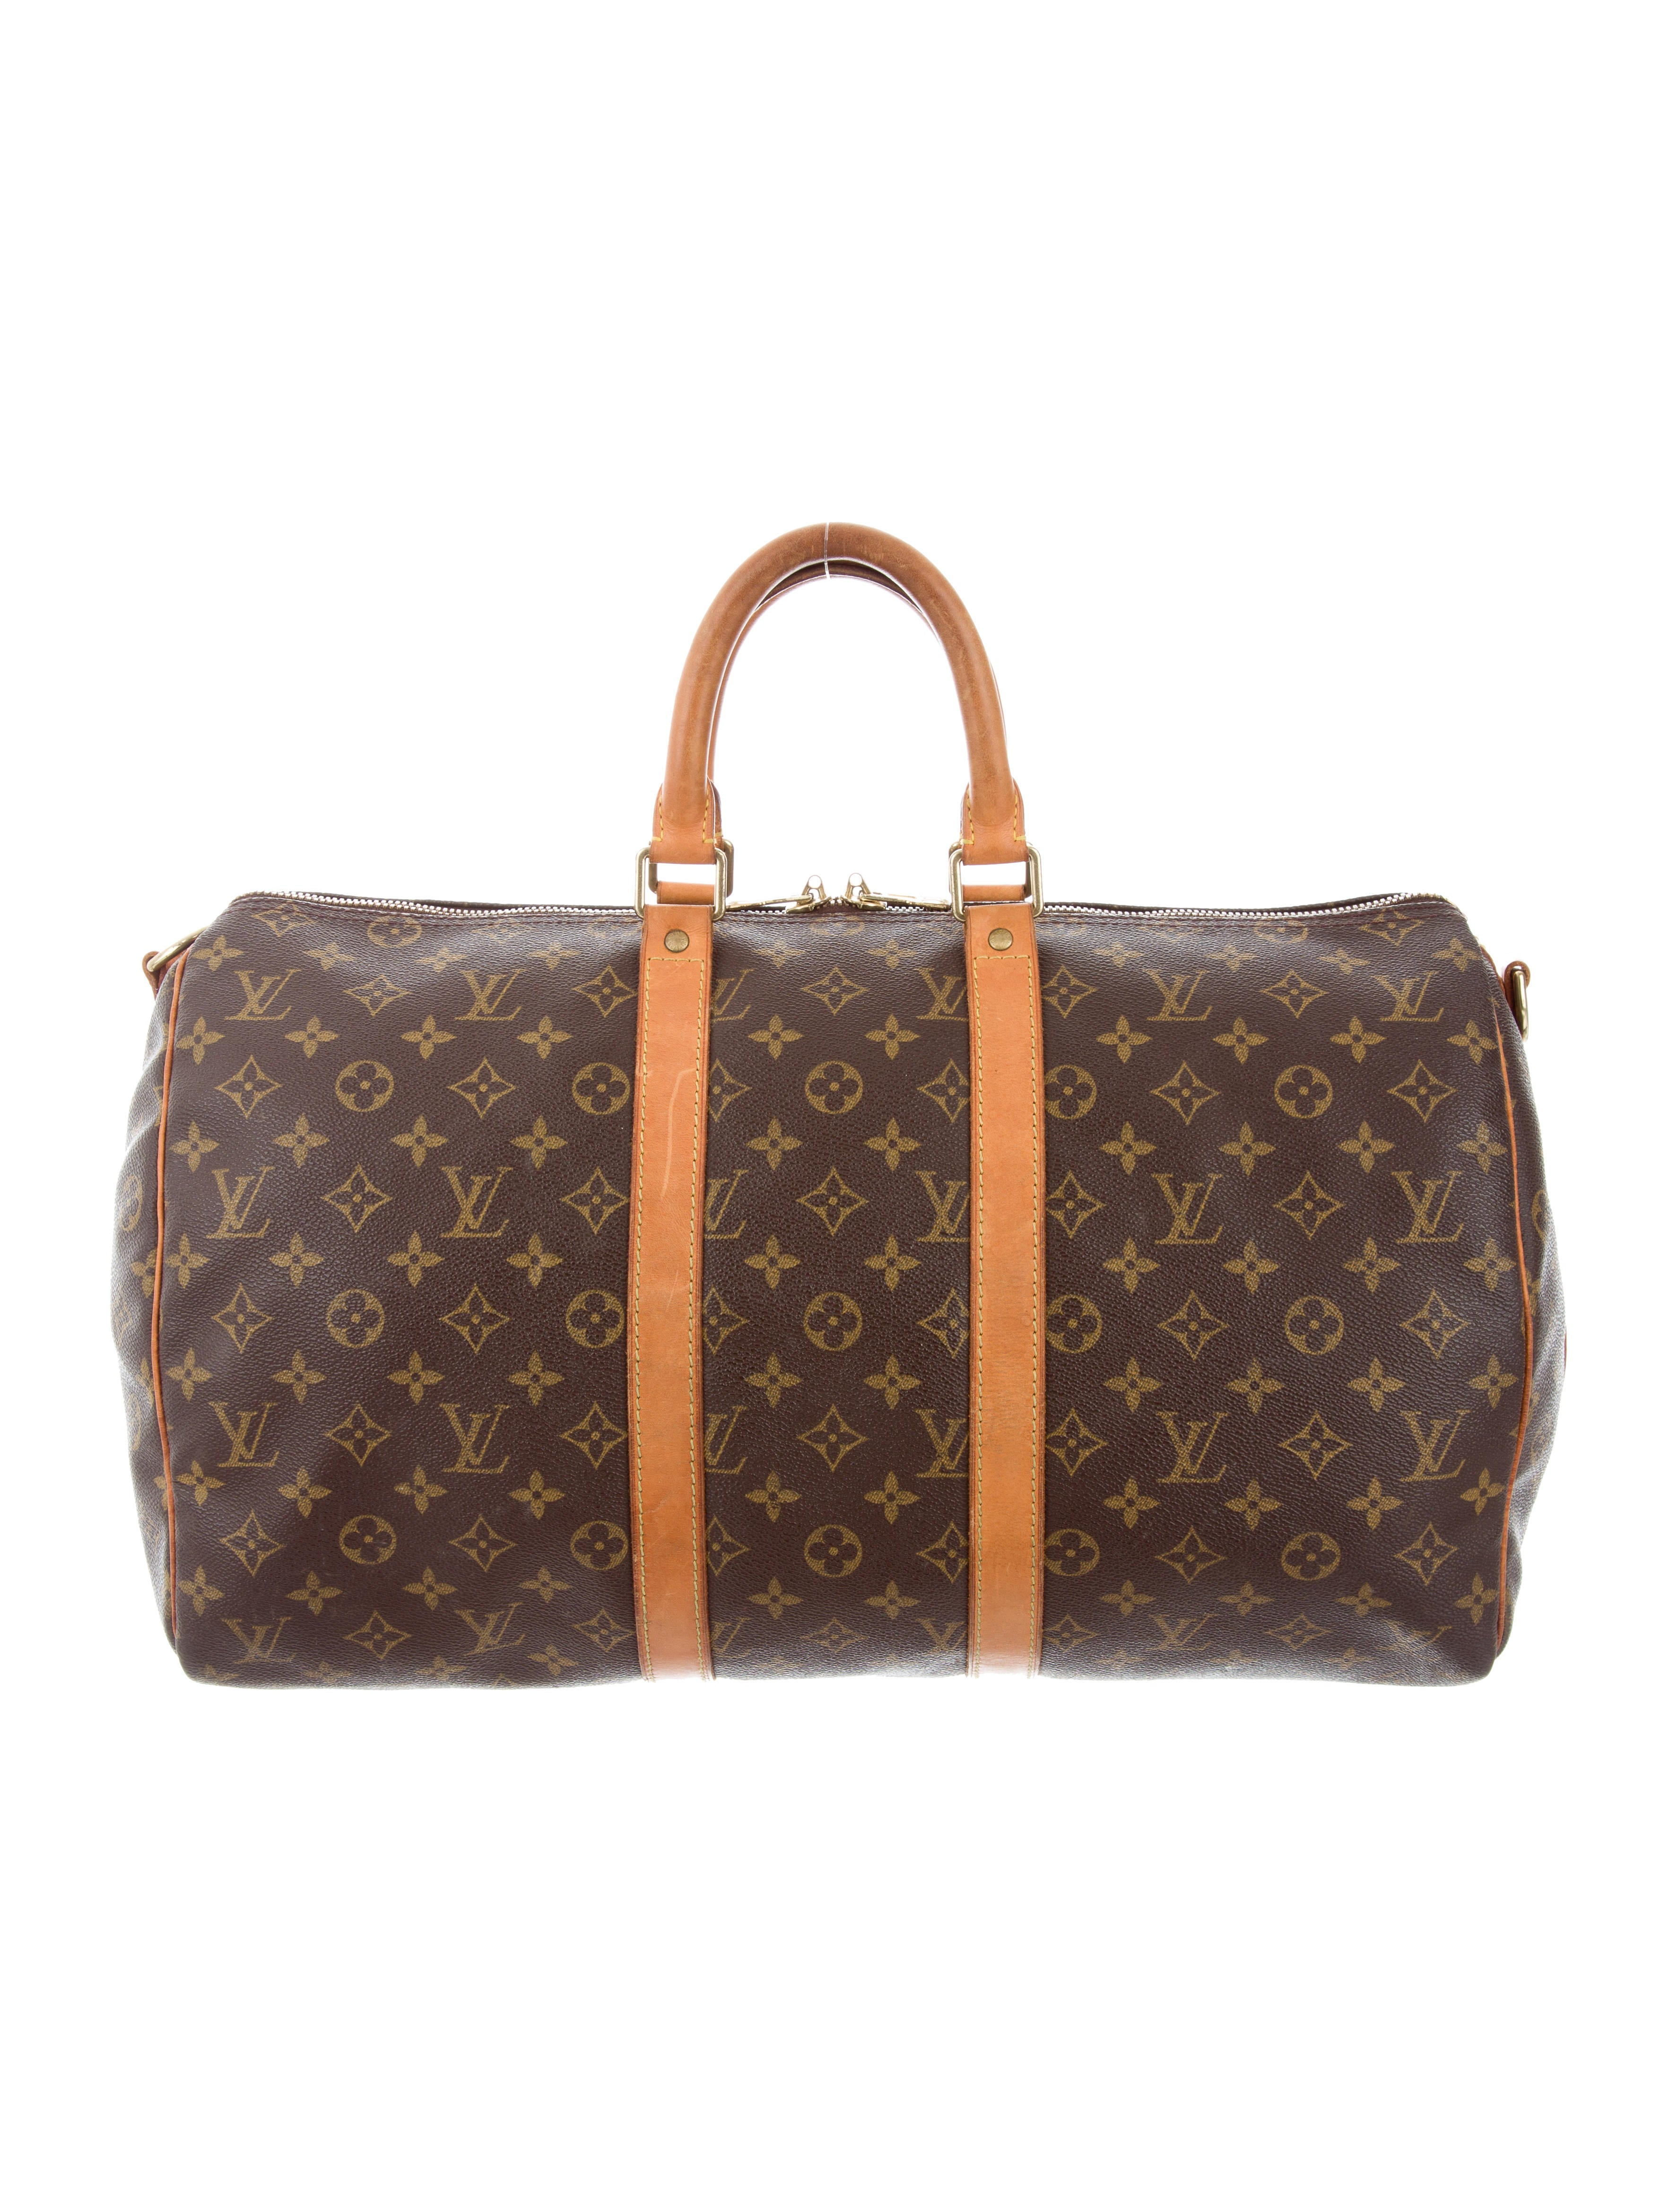 louis vuitton monogram keepall bandouliere 45 handbags lou118134 the realreal. Black Bedroom Furniture Sets. Home Design Ideas